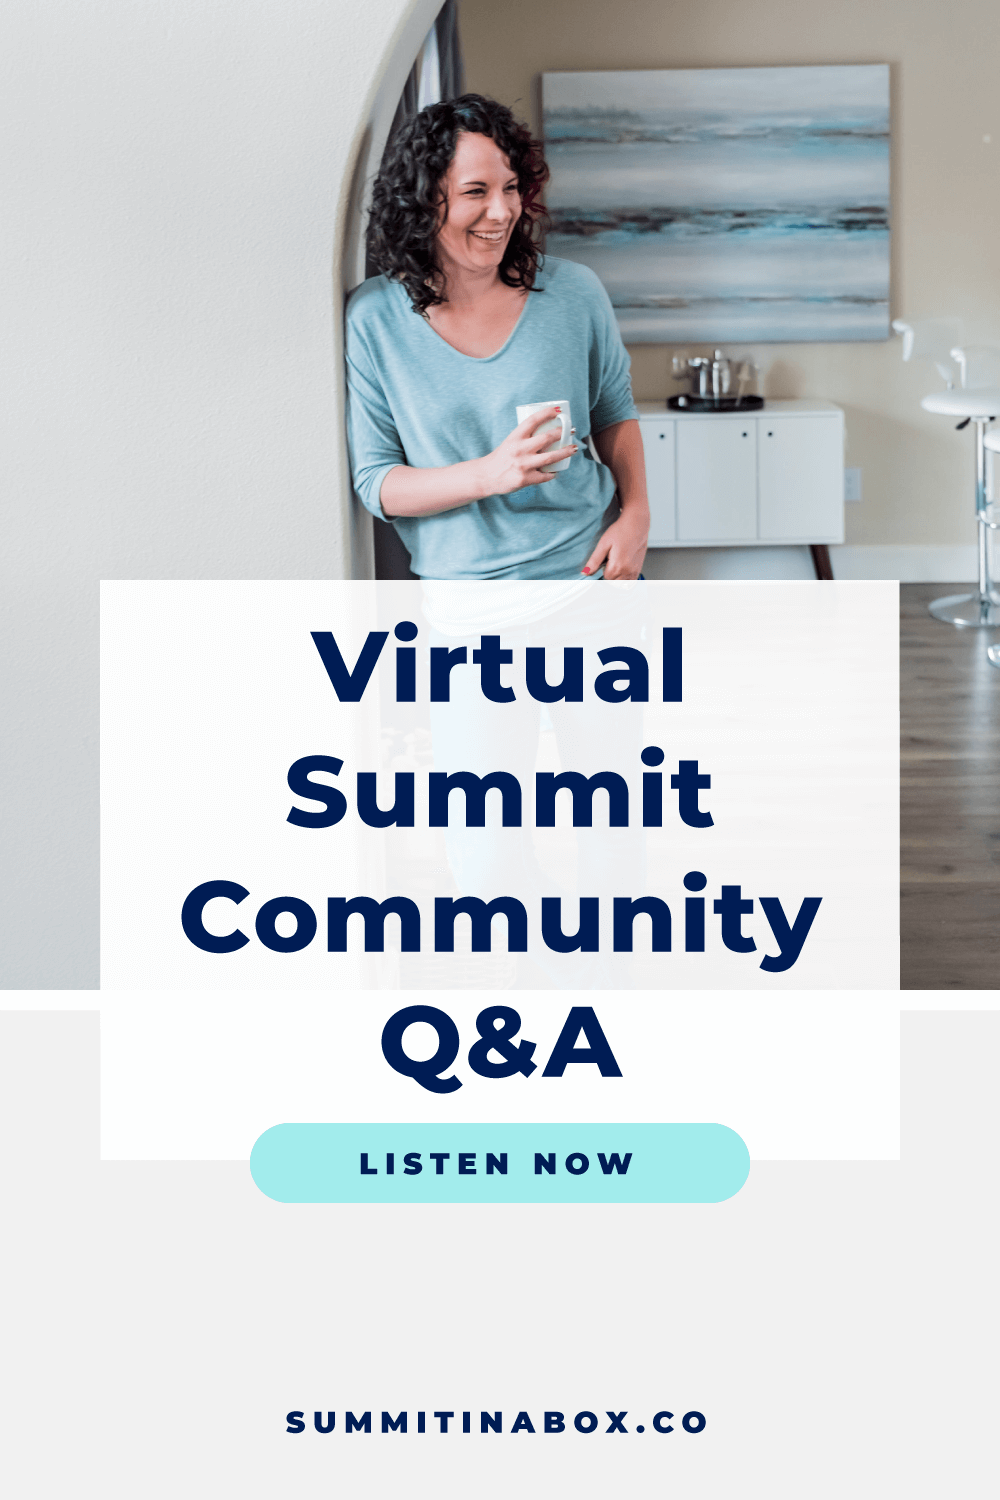 A Facebook group for your summit is a great tool to increase engagement. Let's cover the most frequently asked questions I see around having a summit community.